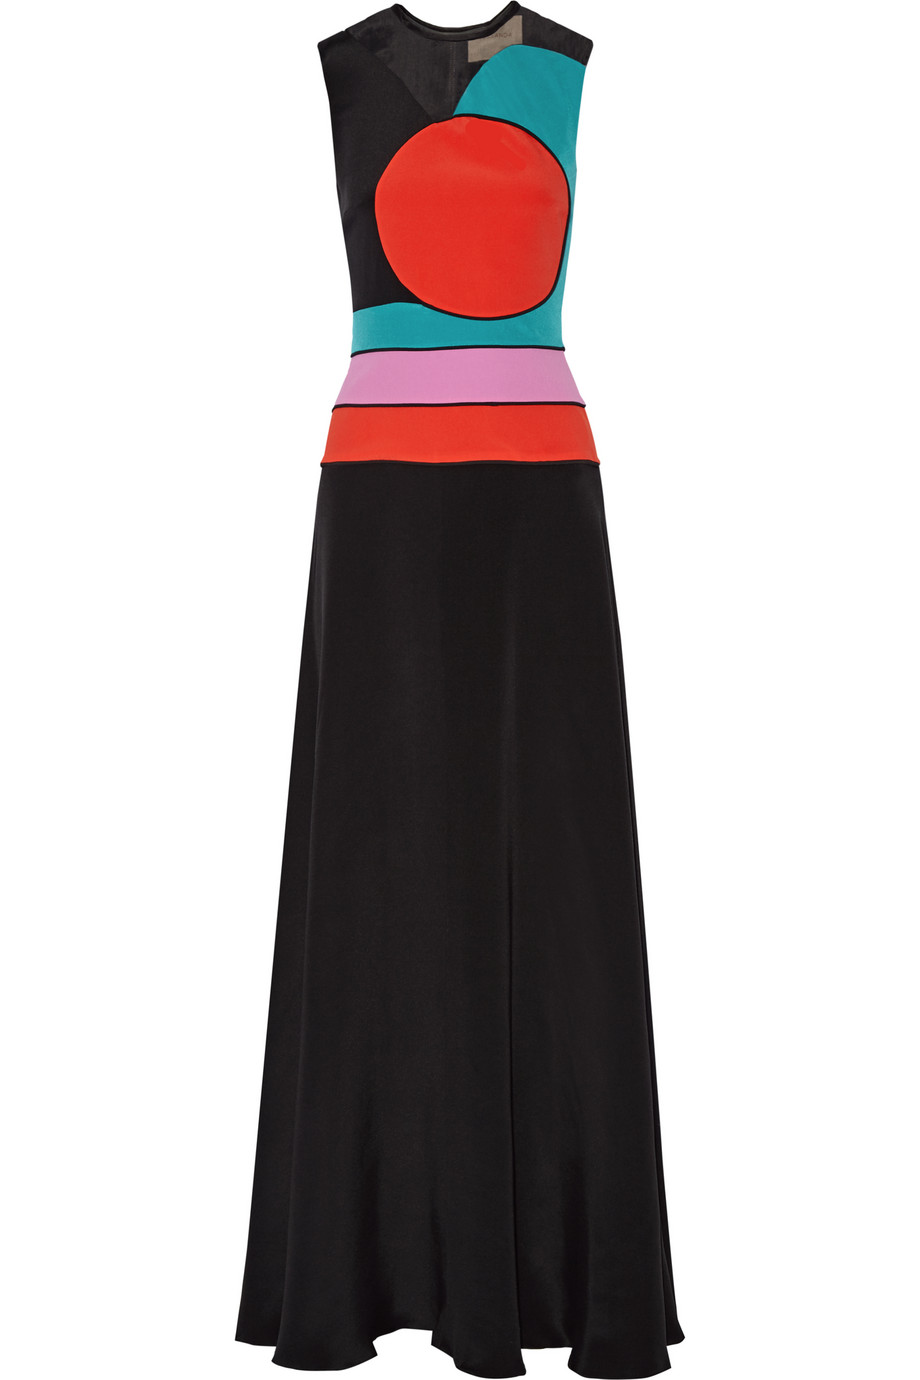 Roksanda Amias Color-Block Silk-Blend Maxi Dress, Black/Red, Women's - Striped, Size: 6